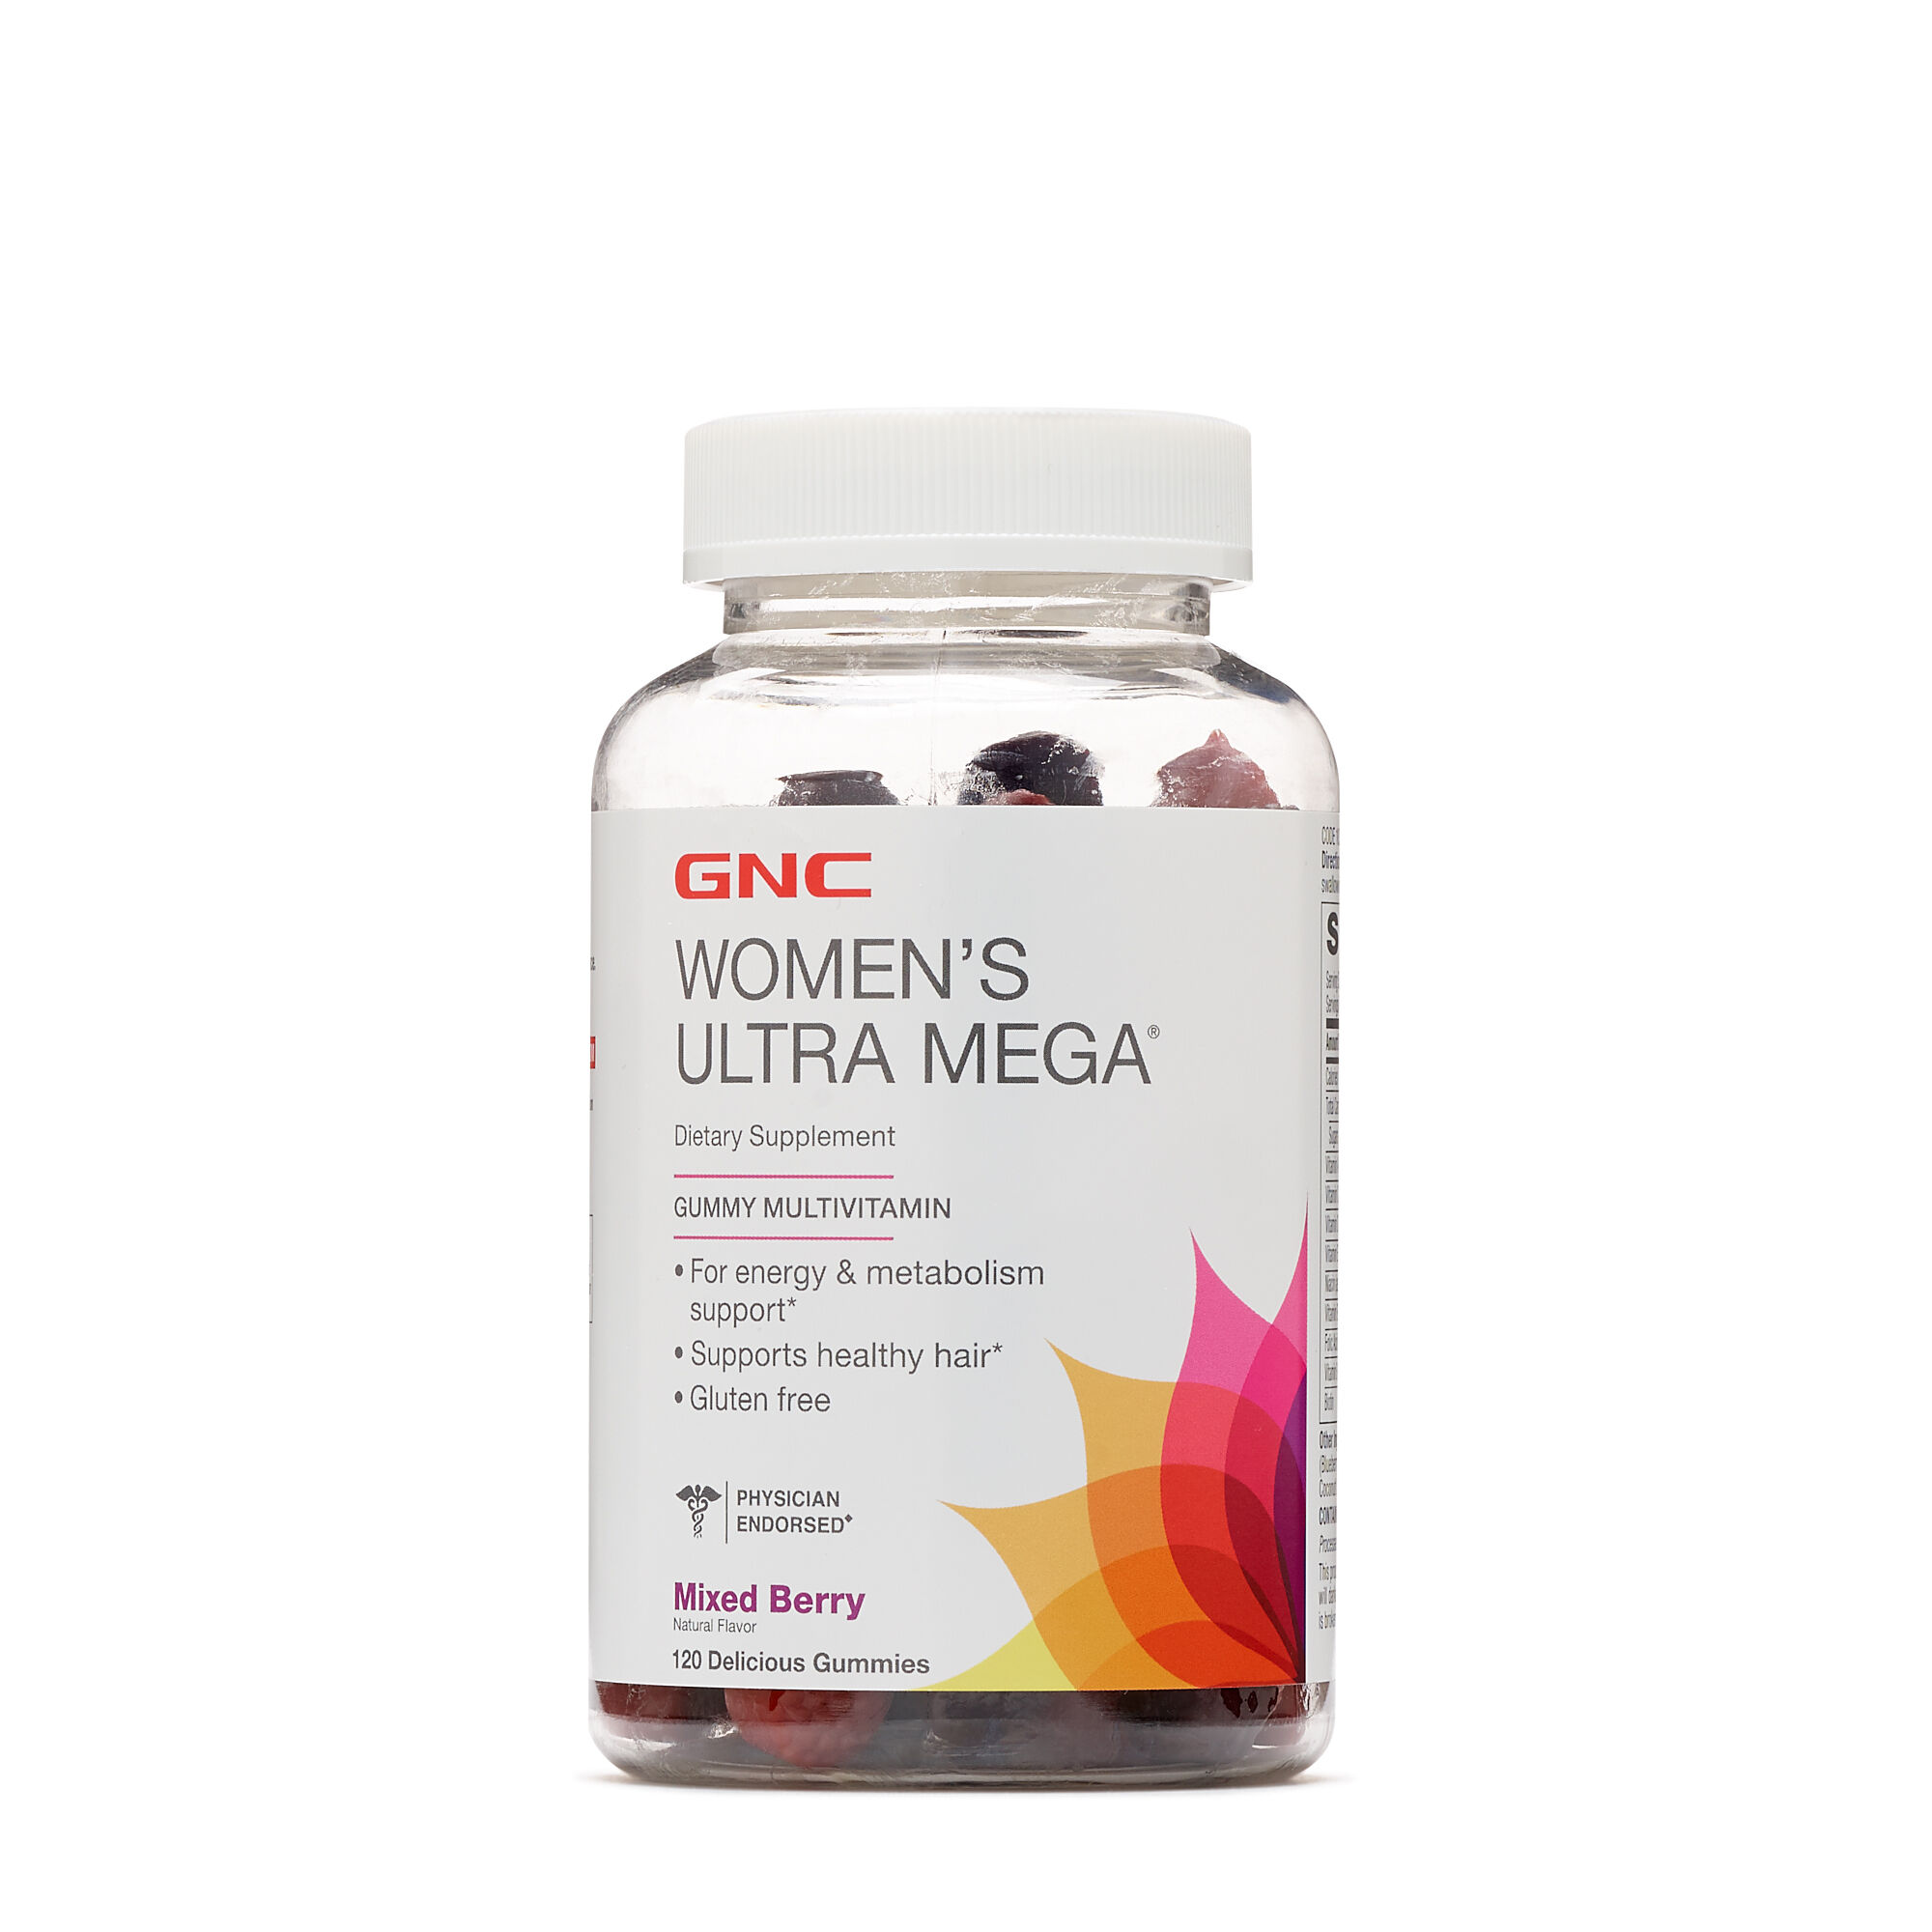 GNC Women's Ultra Mega Gummy Multivitamin - Mixed Berry